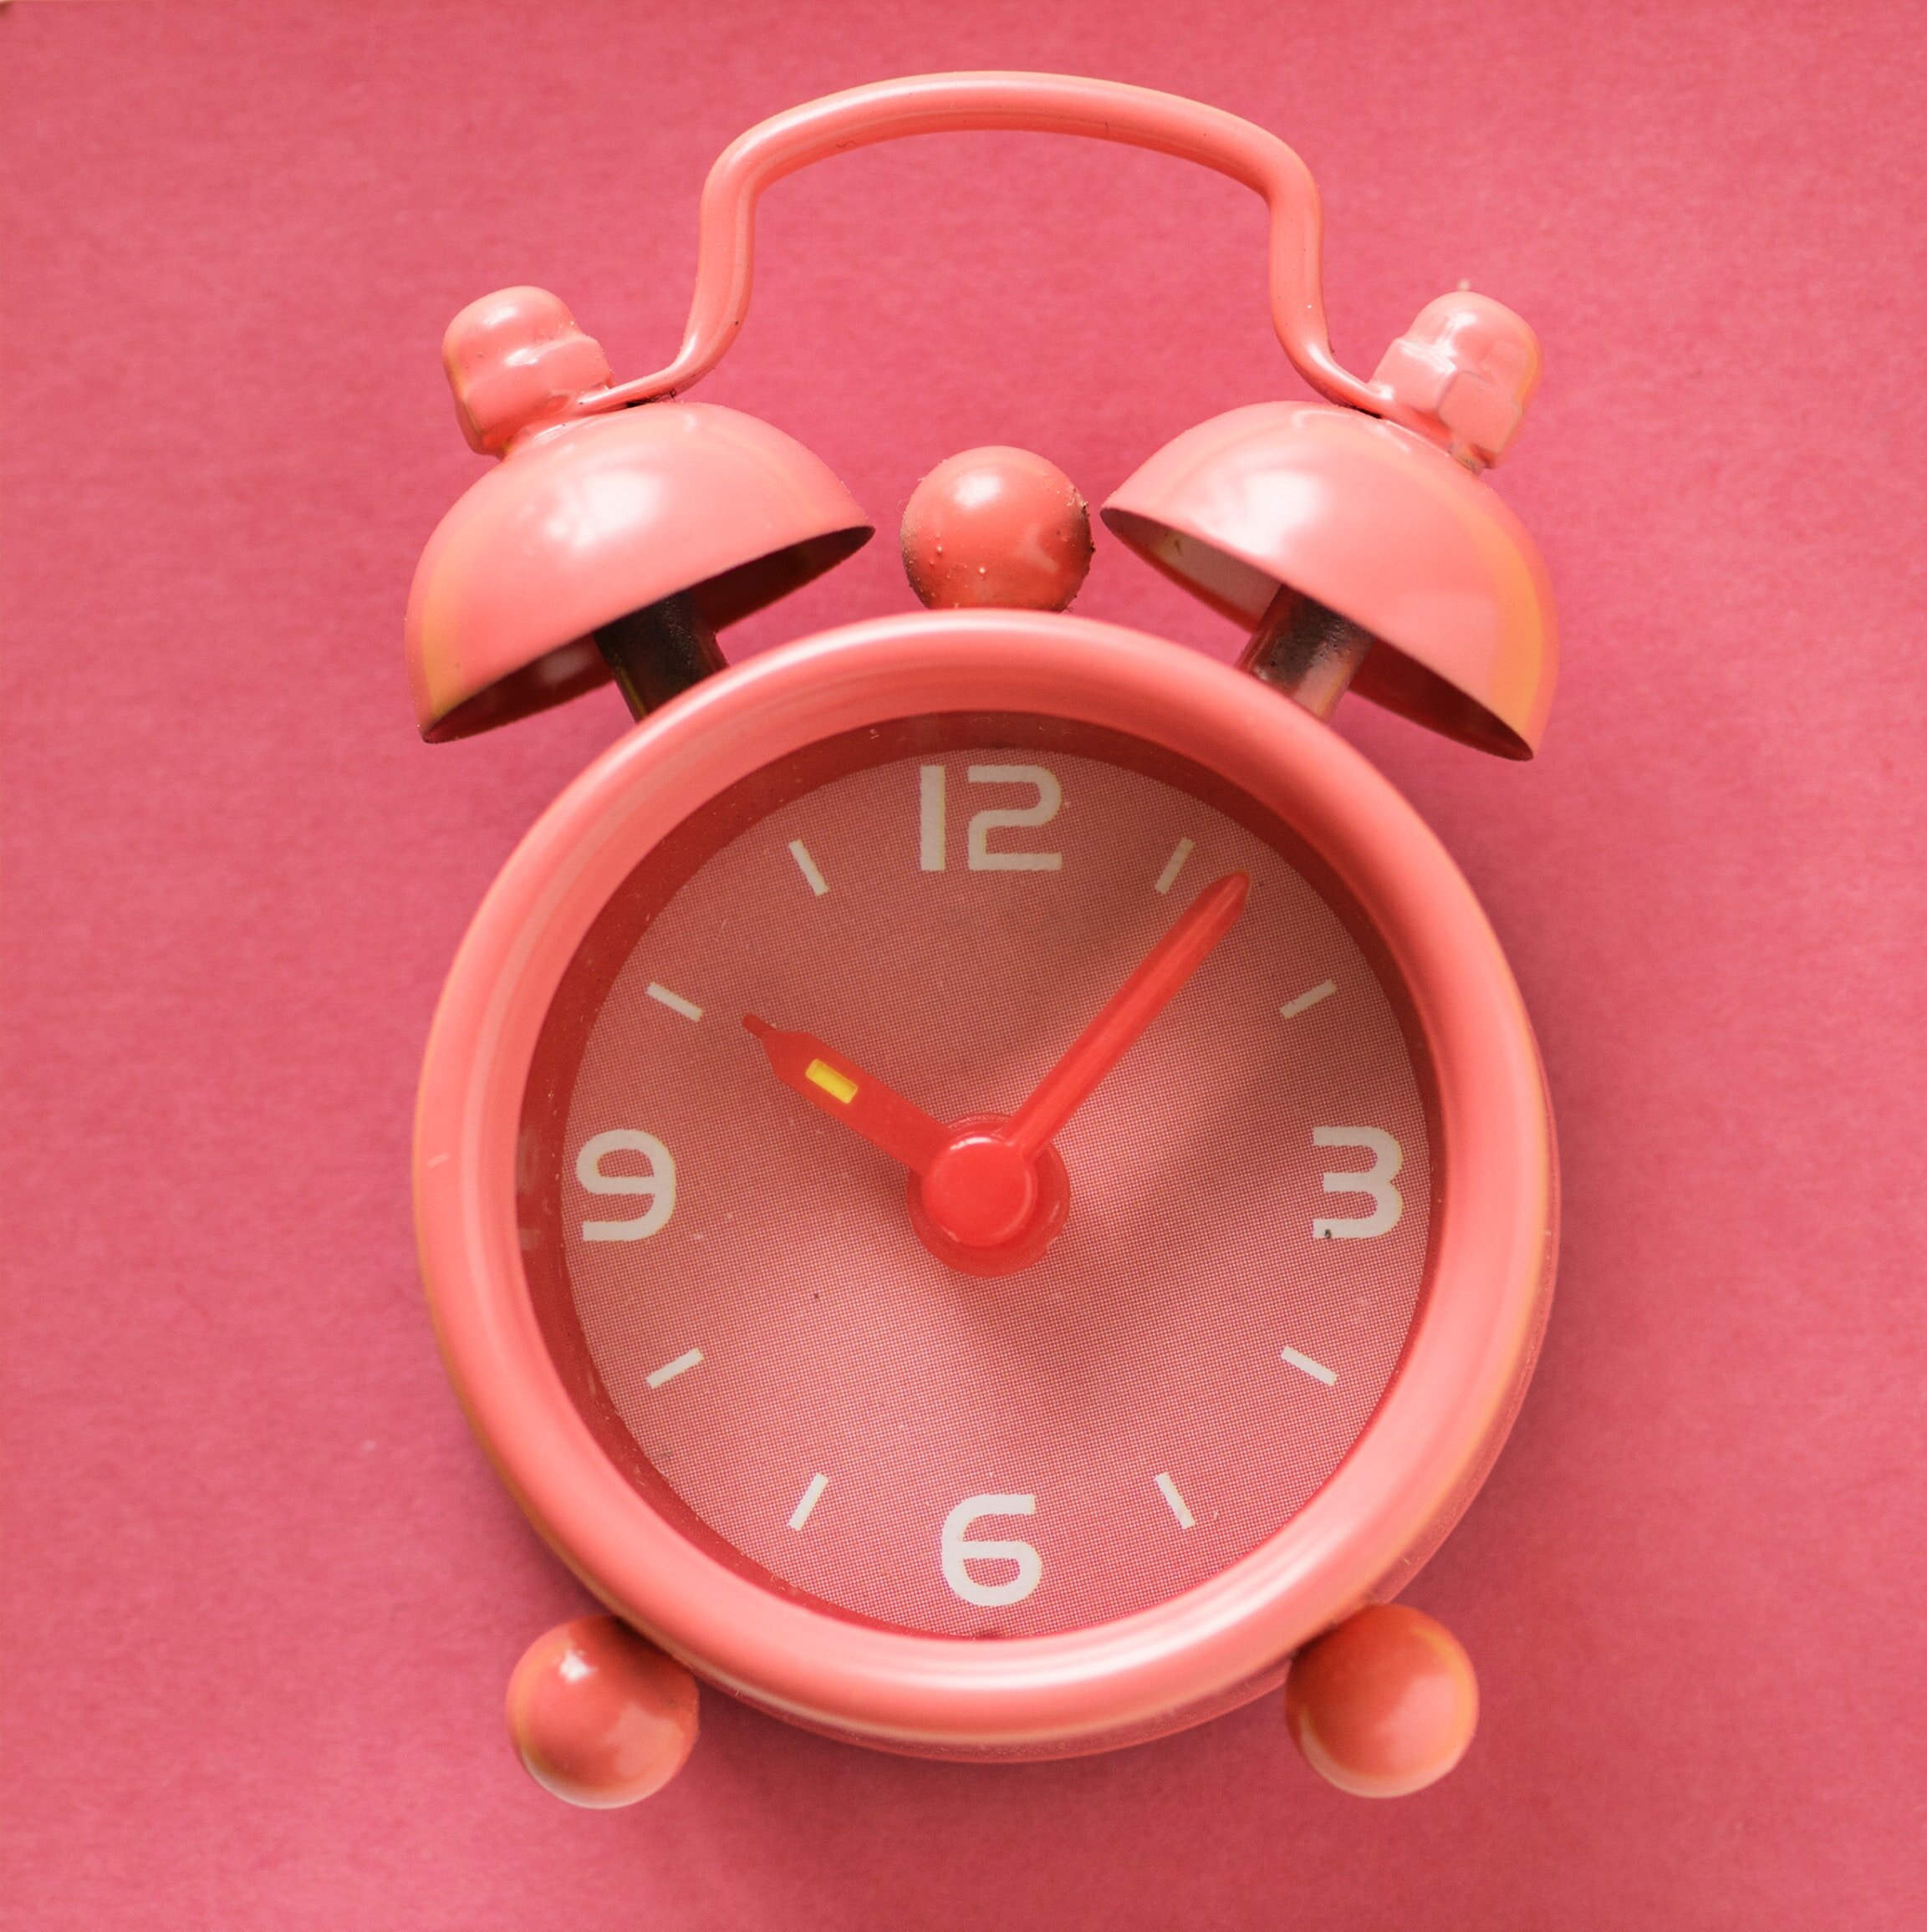 alarm-clock-analog-analogue-1065712.jpg